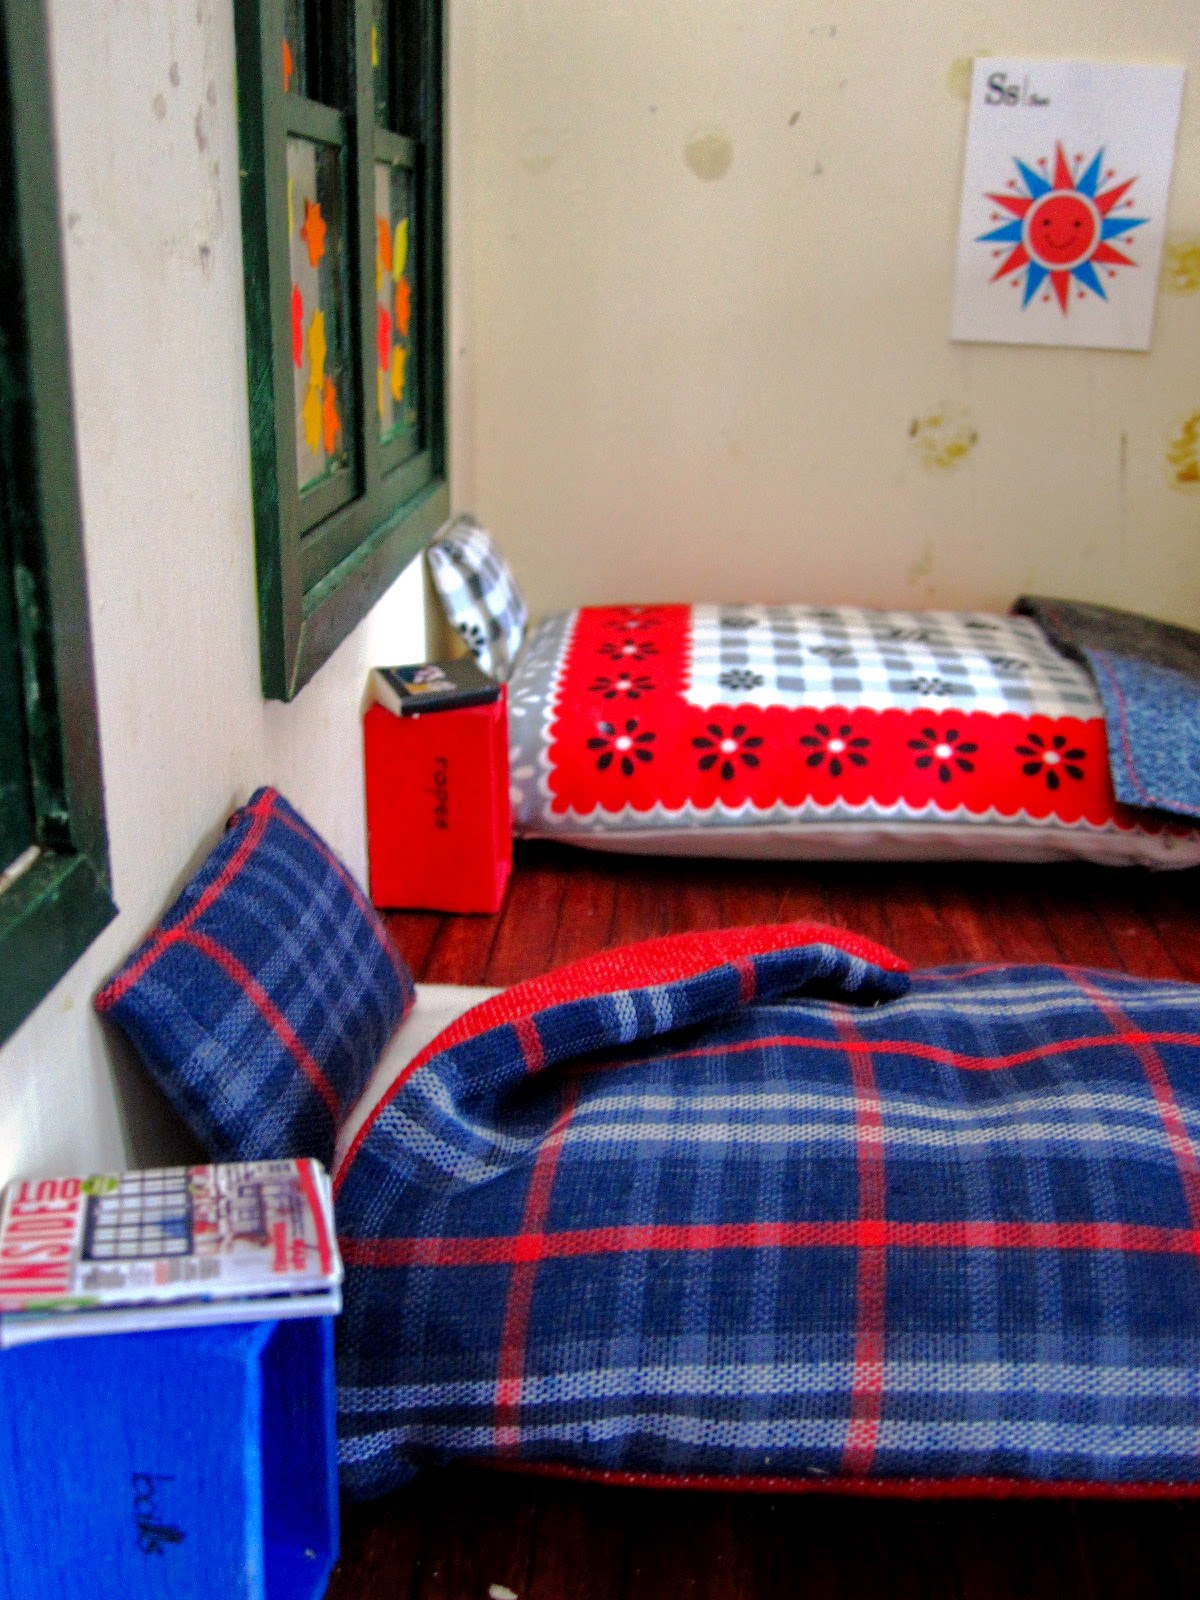 Miniature holiday house scene showing two mattresses on the floor, made up with sheets, pillows and doonas. Next to each is a wooden box on end with reading material on them.